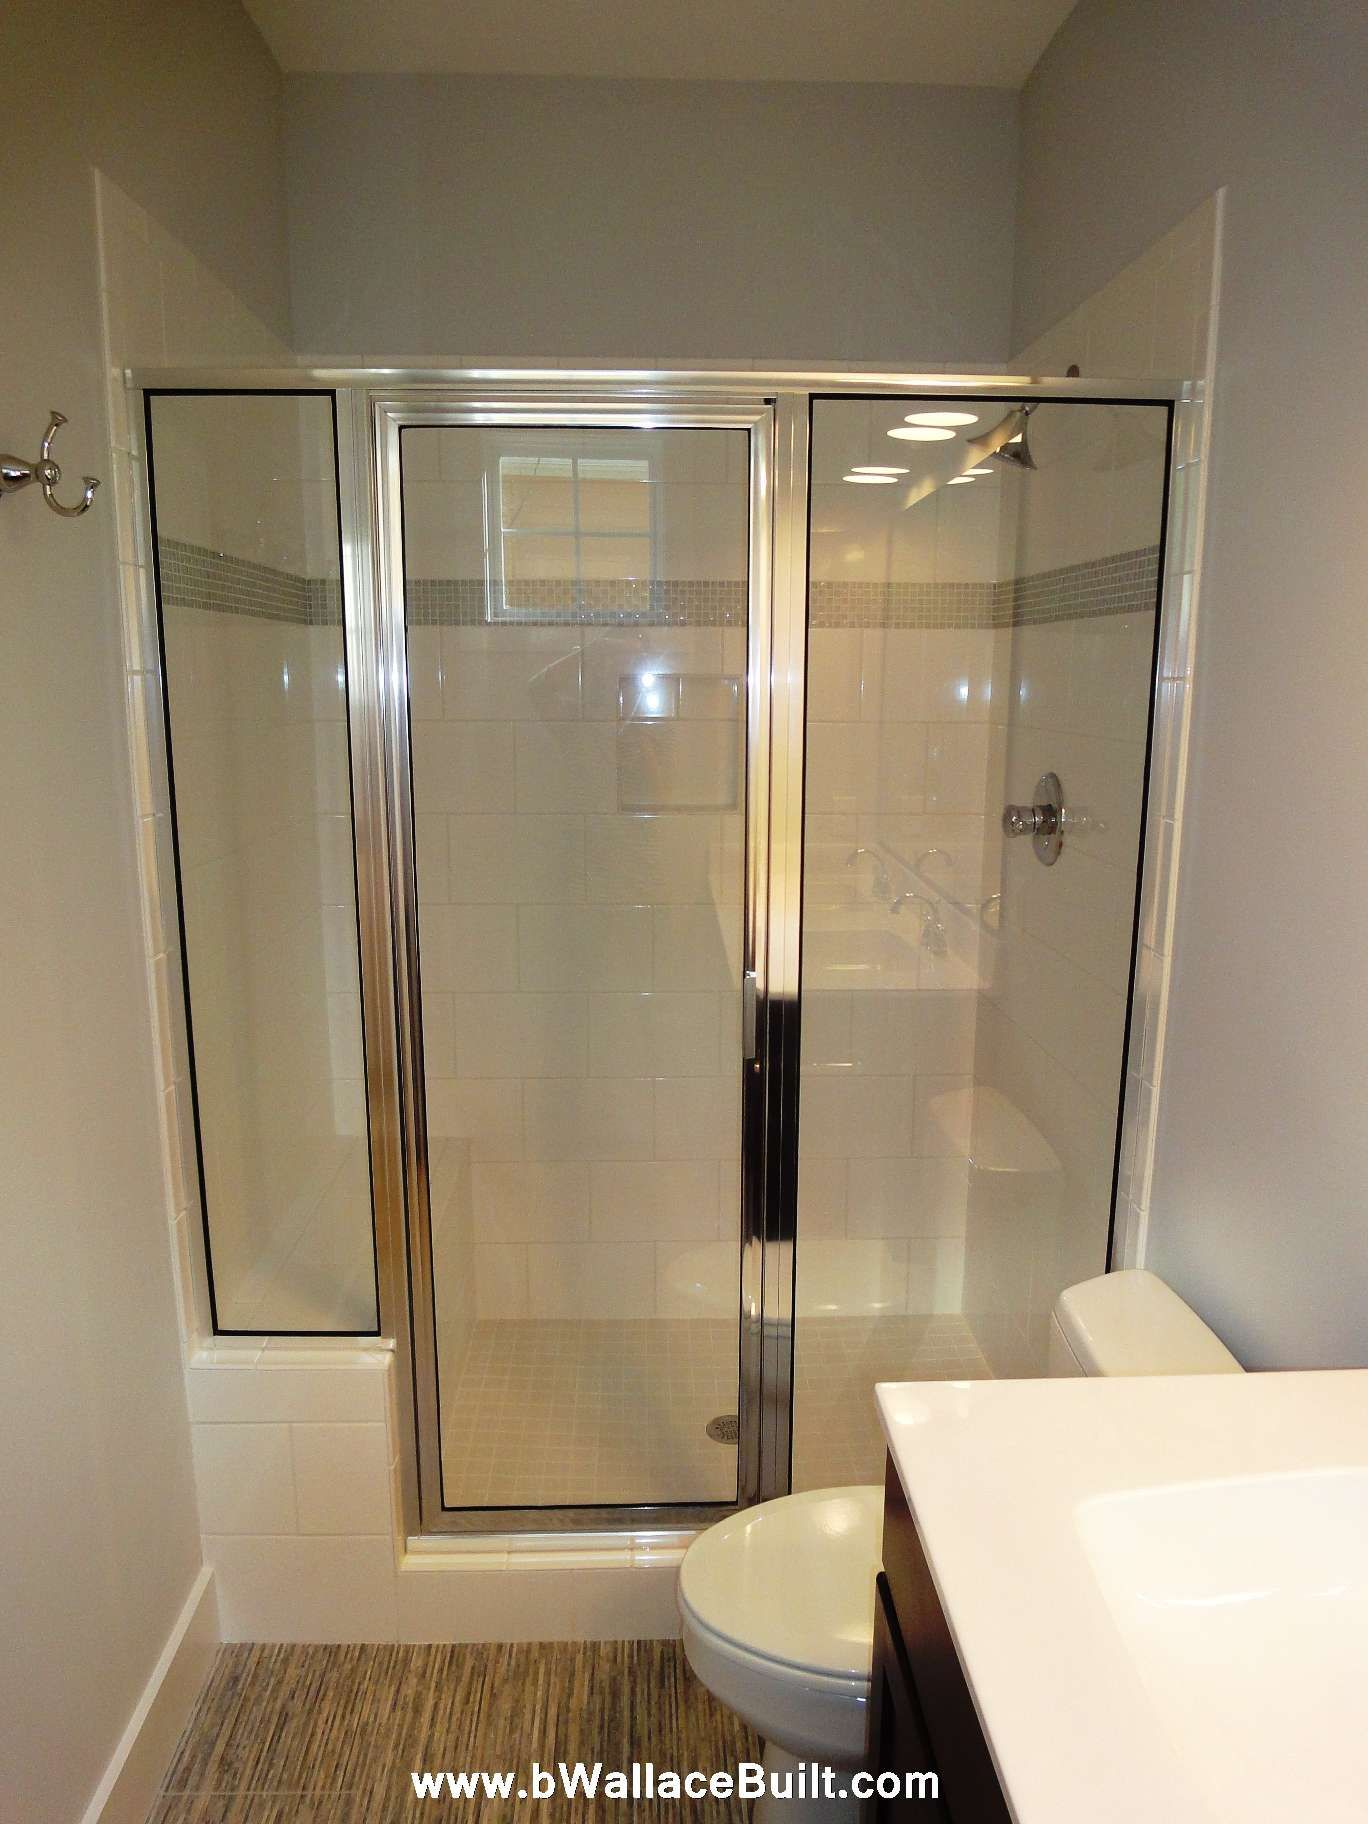 Master Bathroom Walk In Shower But With Frosted Glass Doors Instead Of Clear With Images Bathroom Redo Master Bathroom Bathrooms Remodel